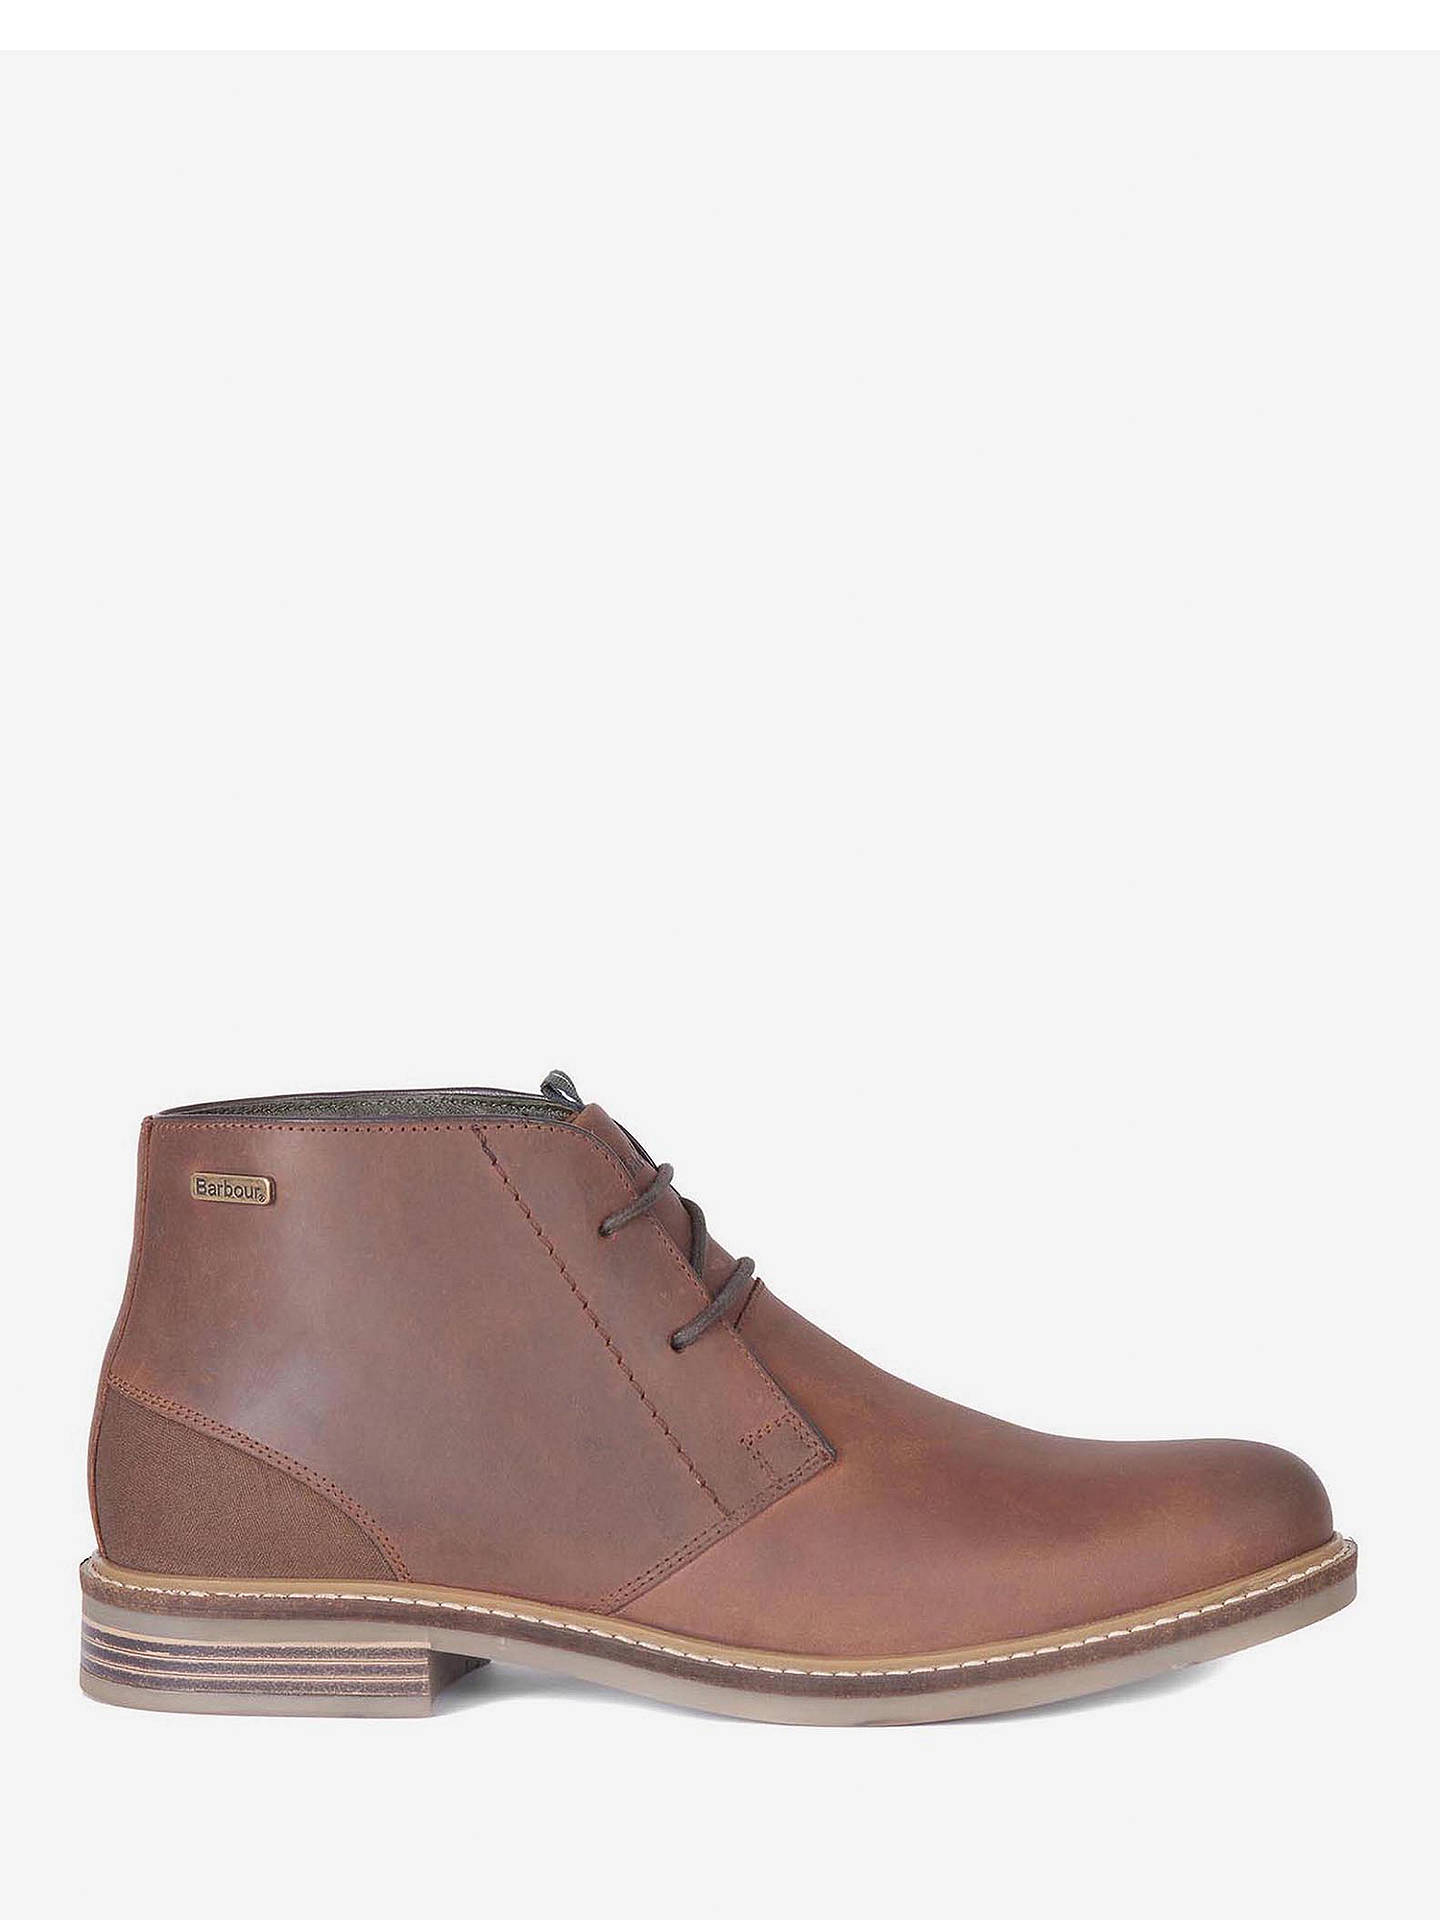 41b2b26758e Barbour Redhead Leather Chukka Boots, Dark Tan at John Lewis & Partners